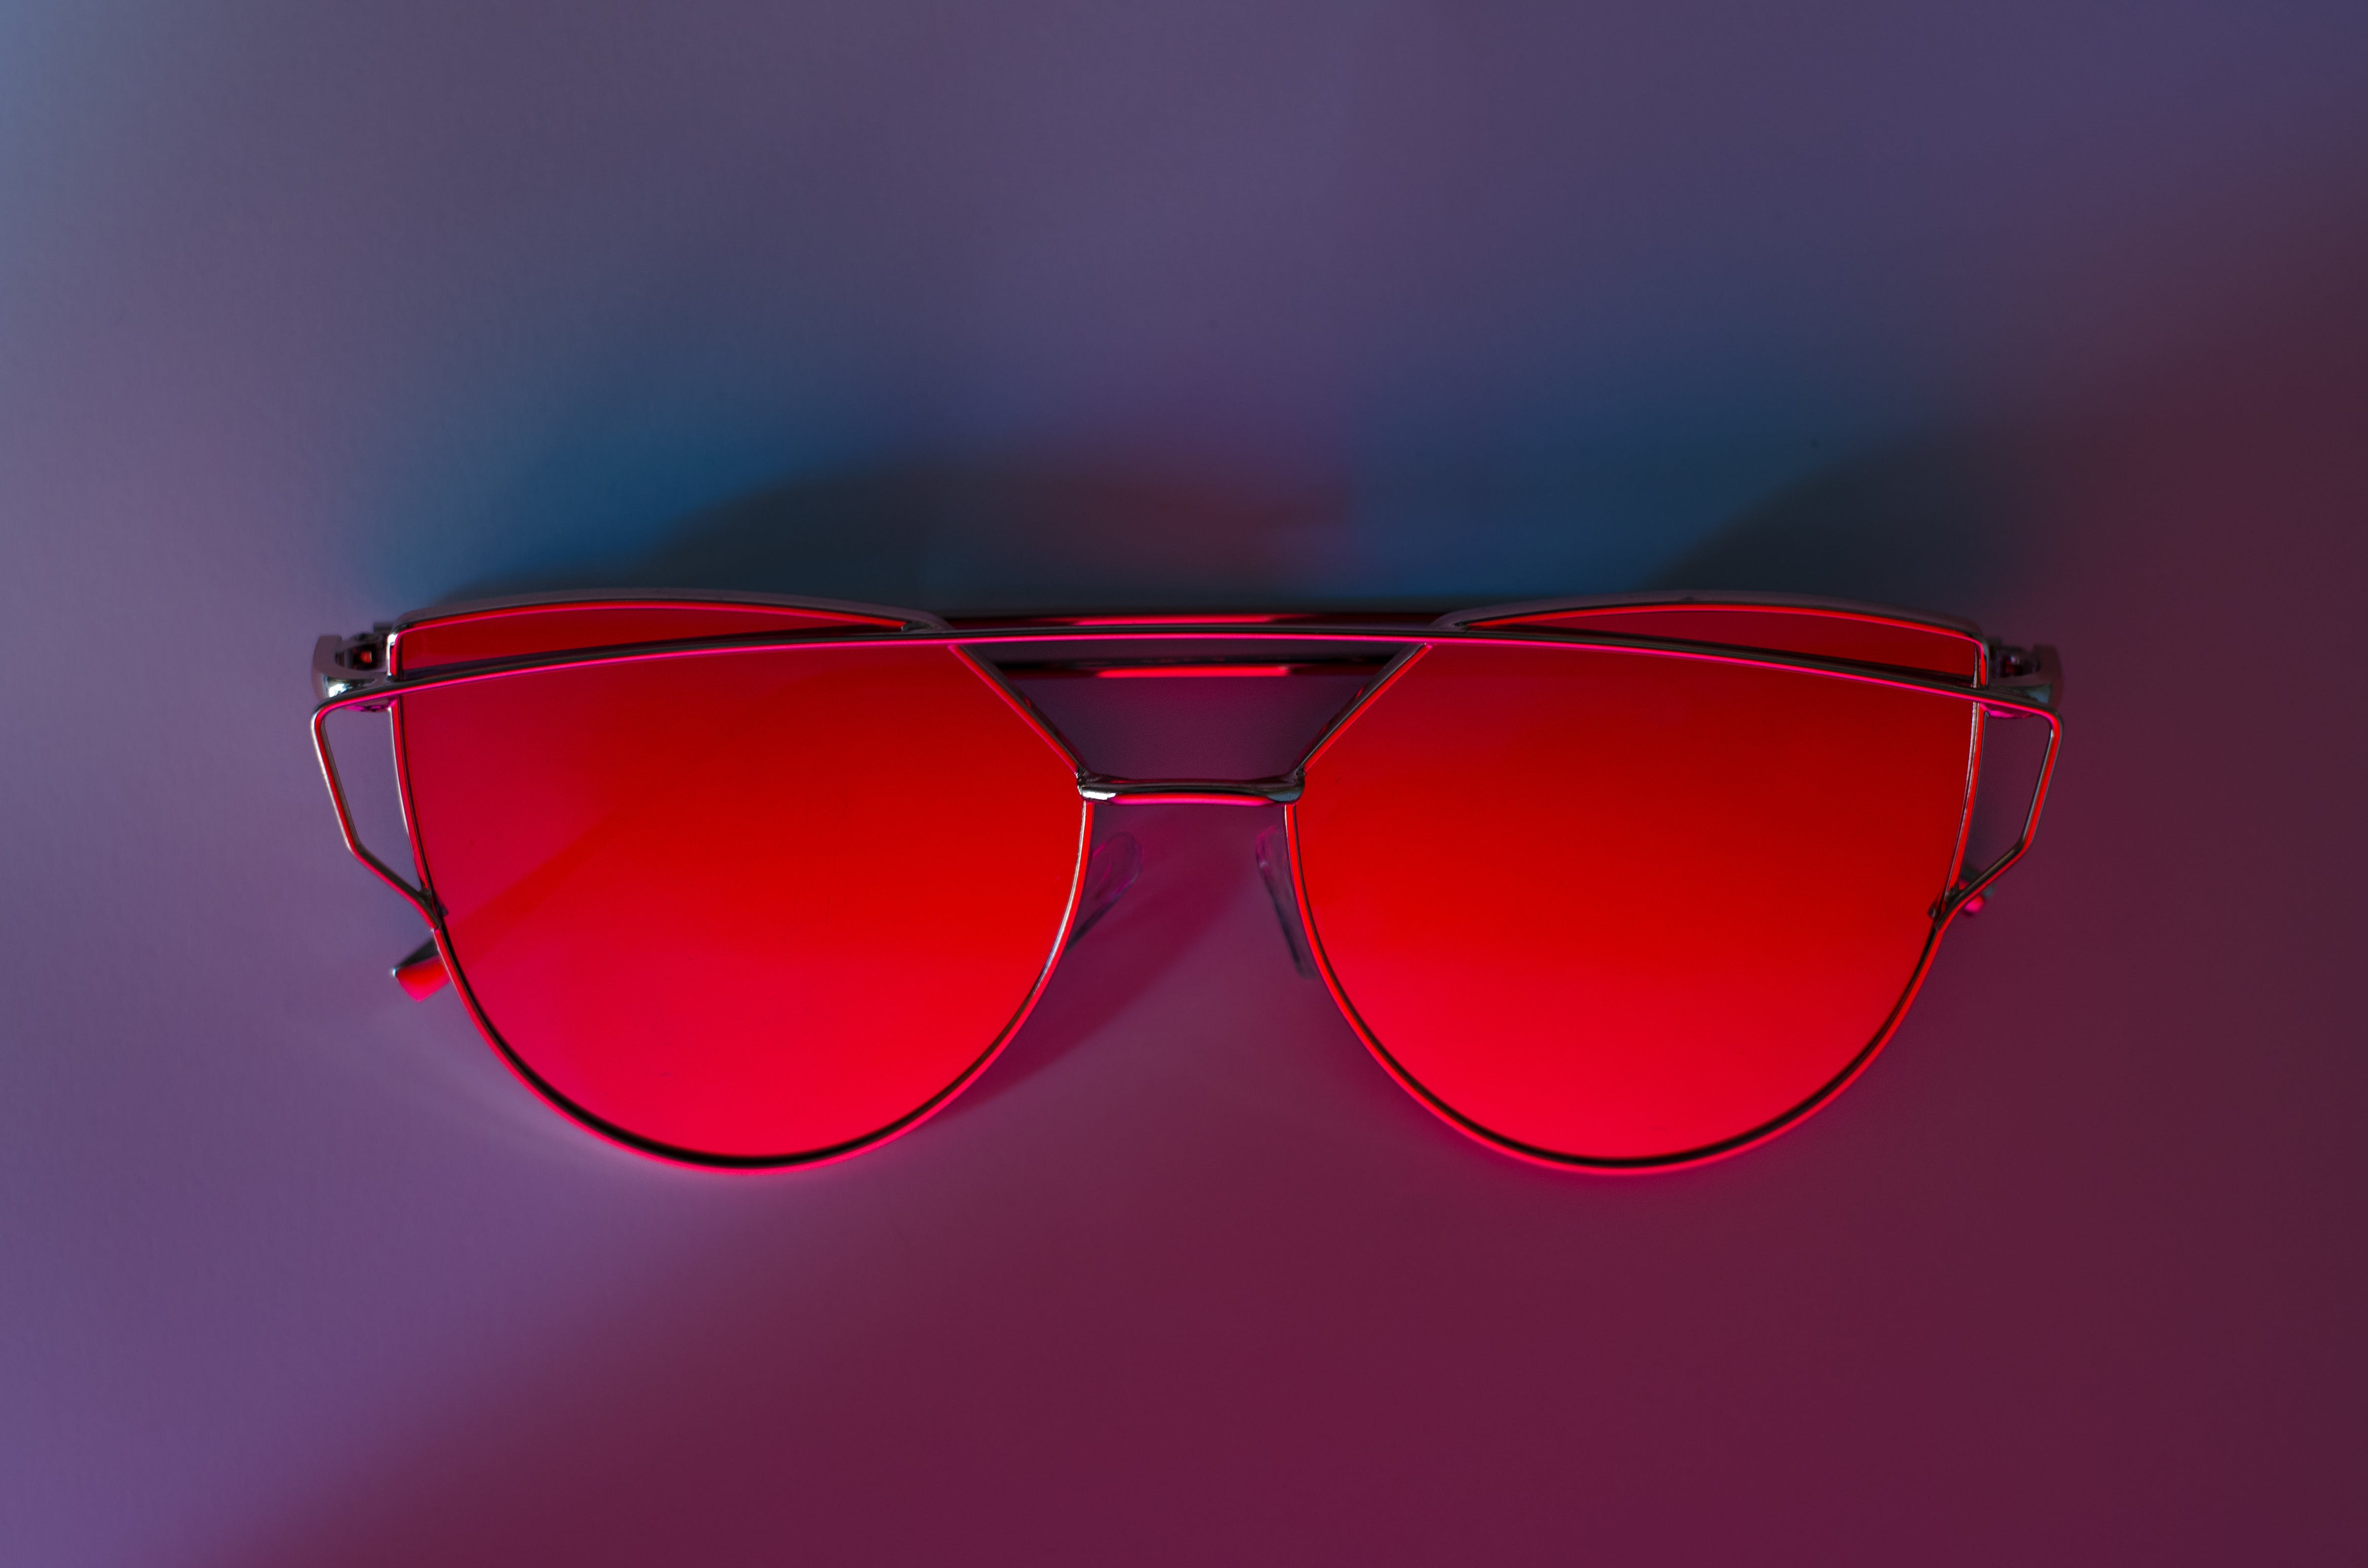 Red Sunglasses on Pink Surface